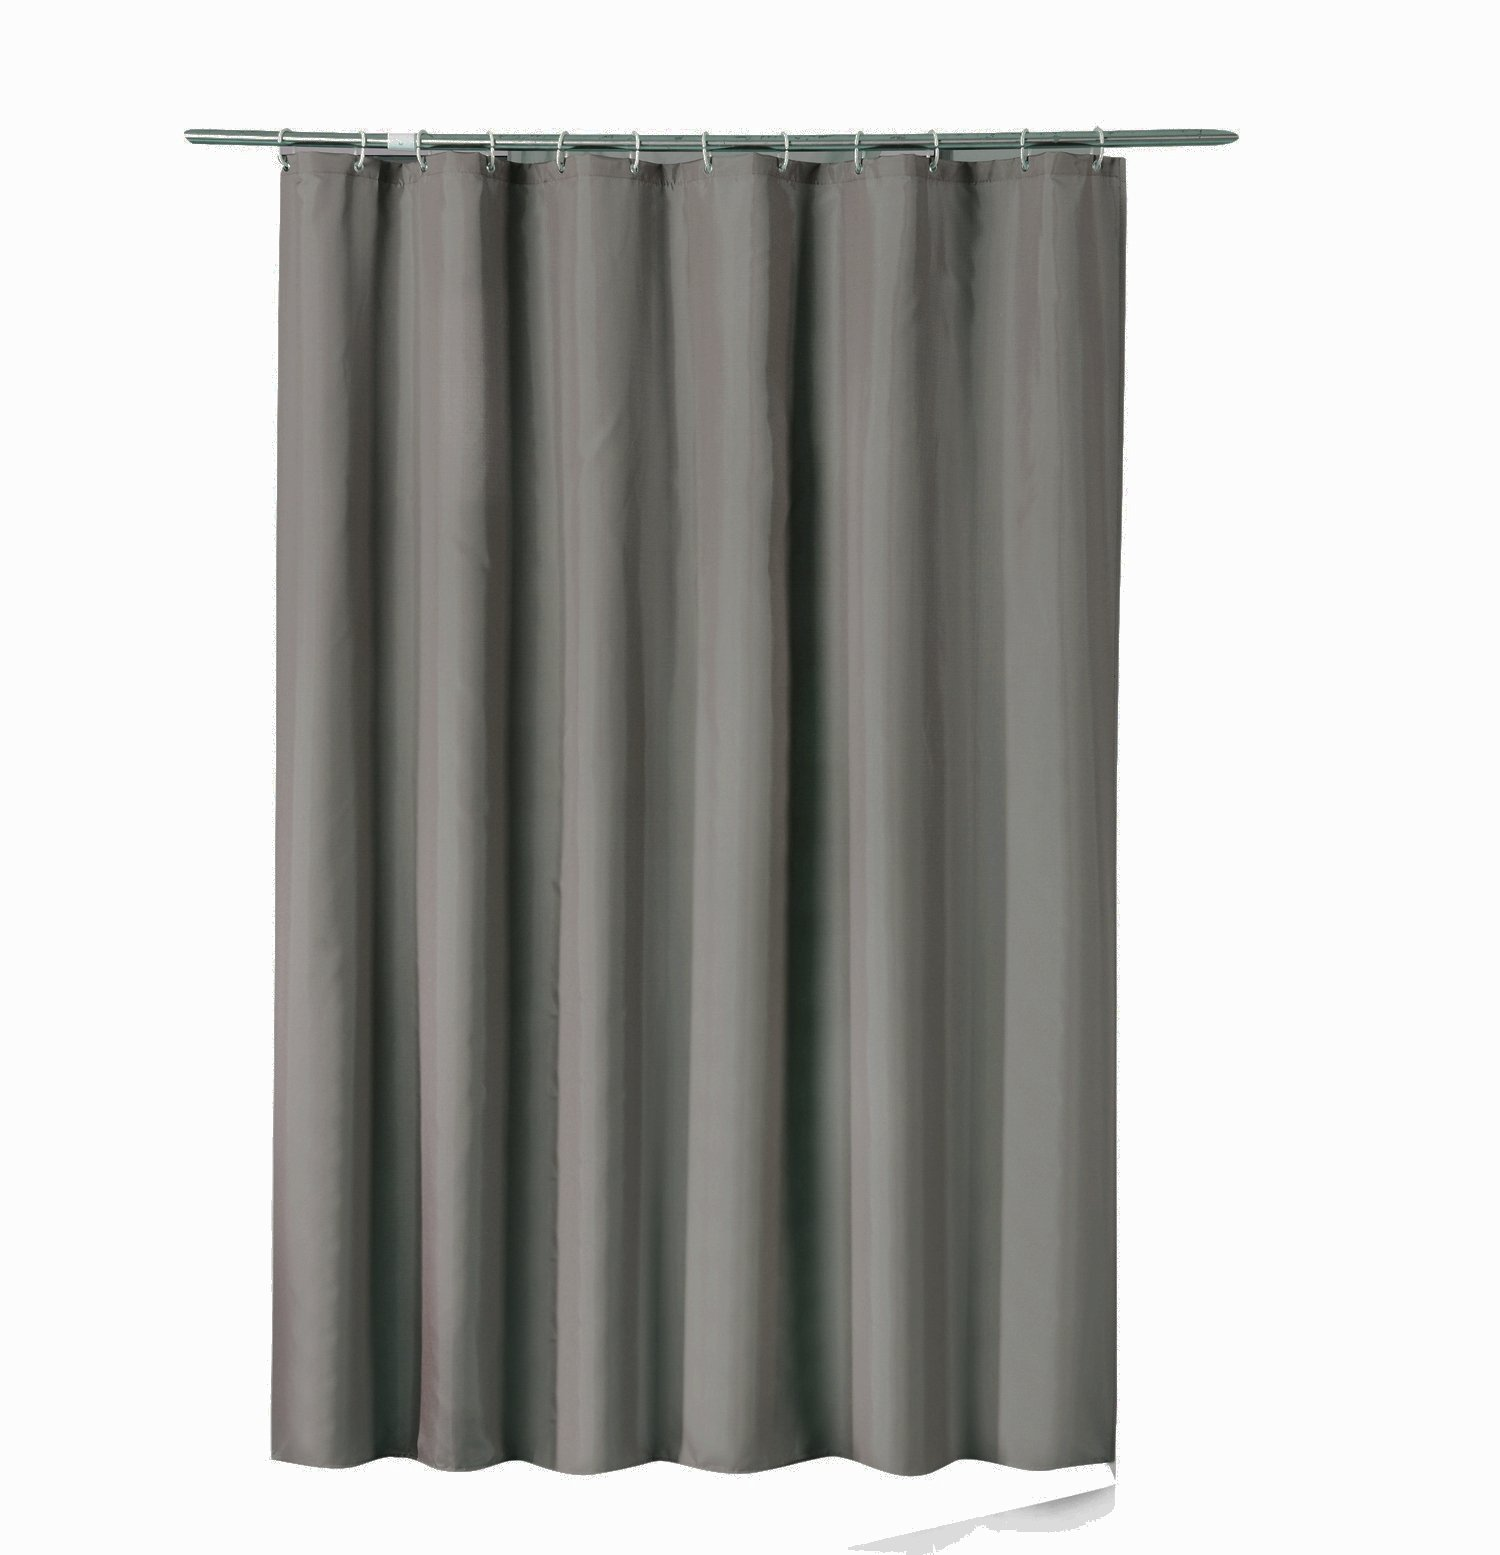 Sfoothome 36 Inch Wide x 72Inch Long Small Size Hotel Fabric Shower Curtain Waterproof and Mildew Free Bath Curtains Heavy Weight, Deep Gray